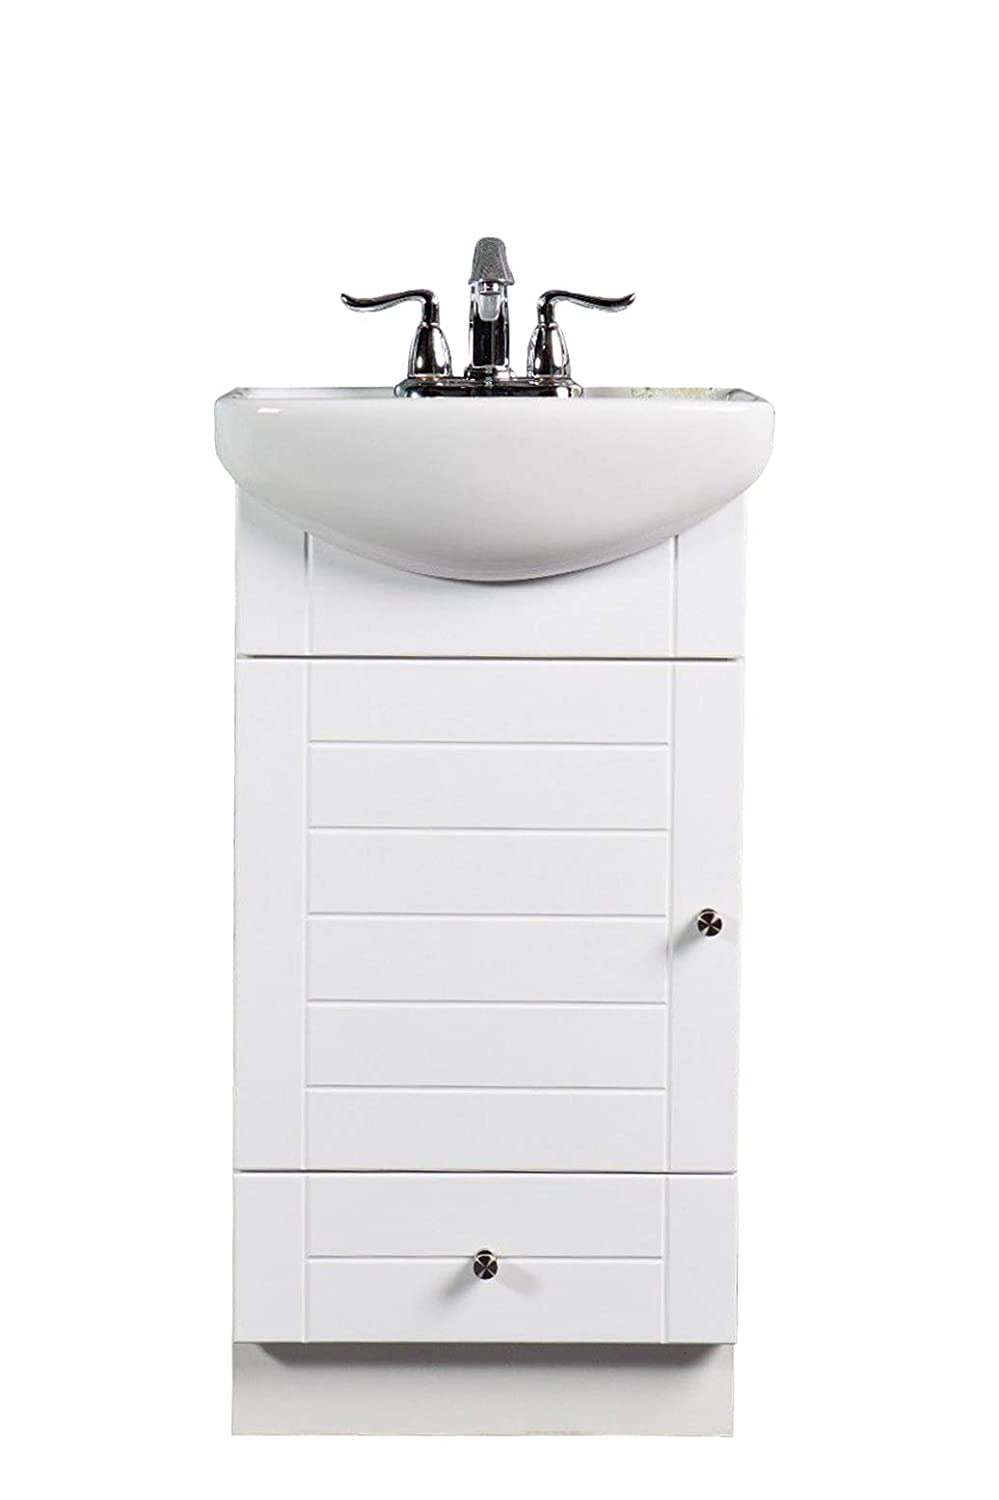 Vanity For Small Bathroom SMALL BATHROOM VANITY CABINET AND SINK WHITE - PE1612W NEW PETITE VANITY -  - Amazon.com